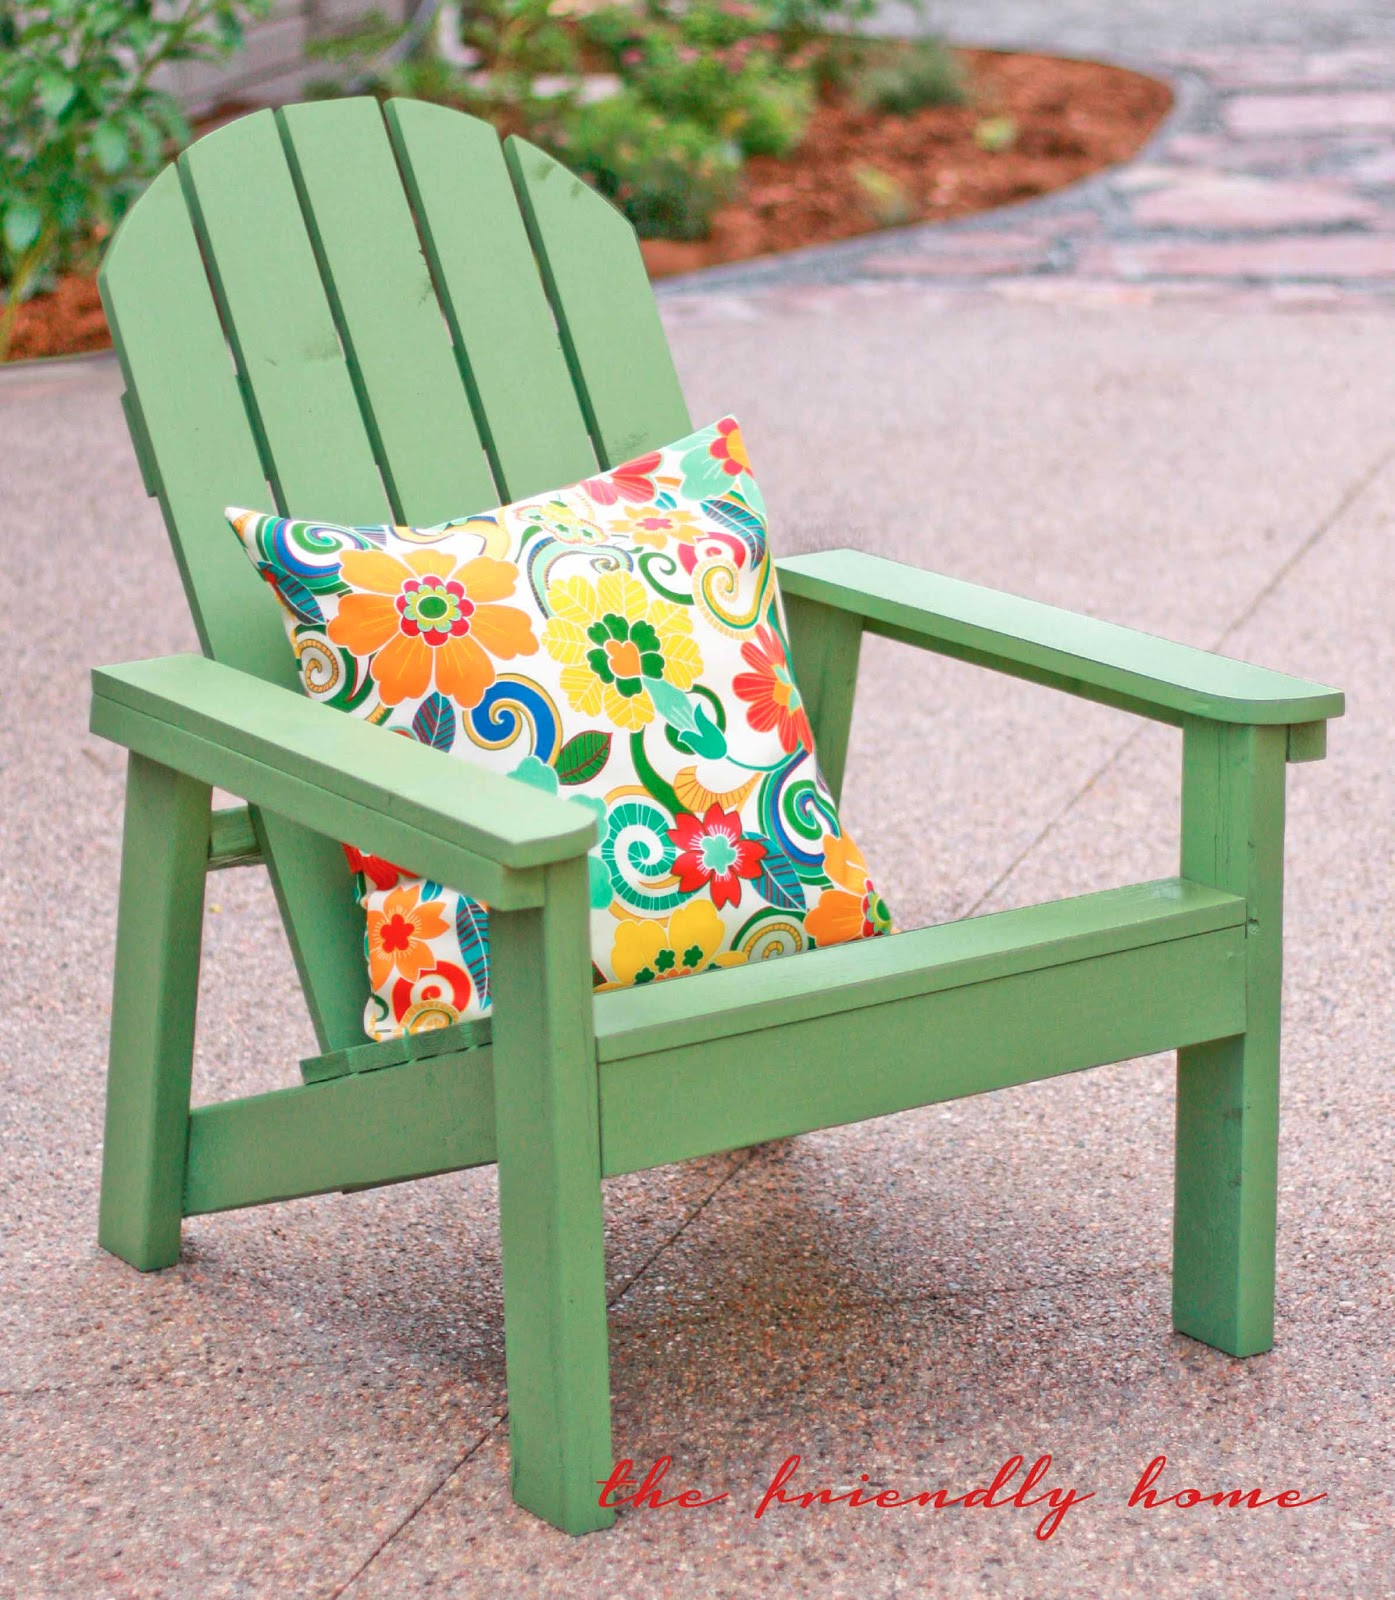 Diy Adirondack Chair Kit Theater Style Chairs For Home